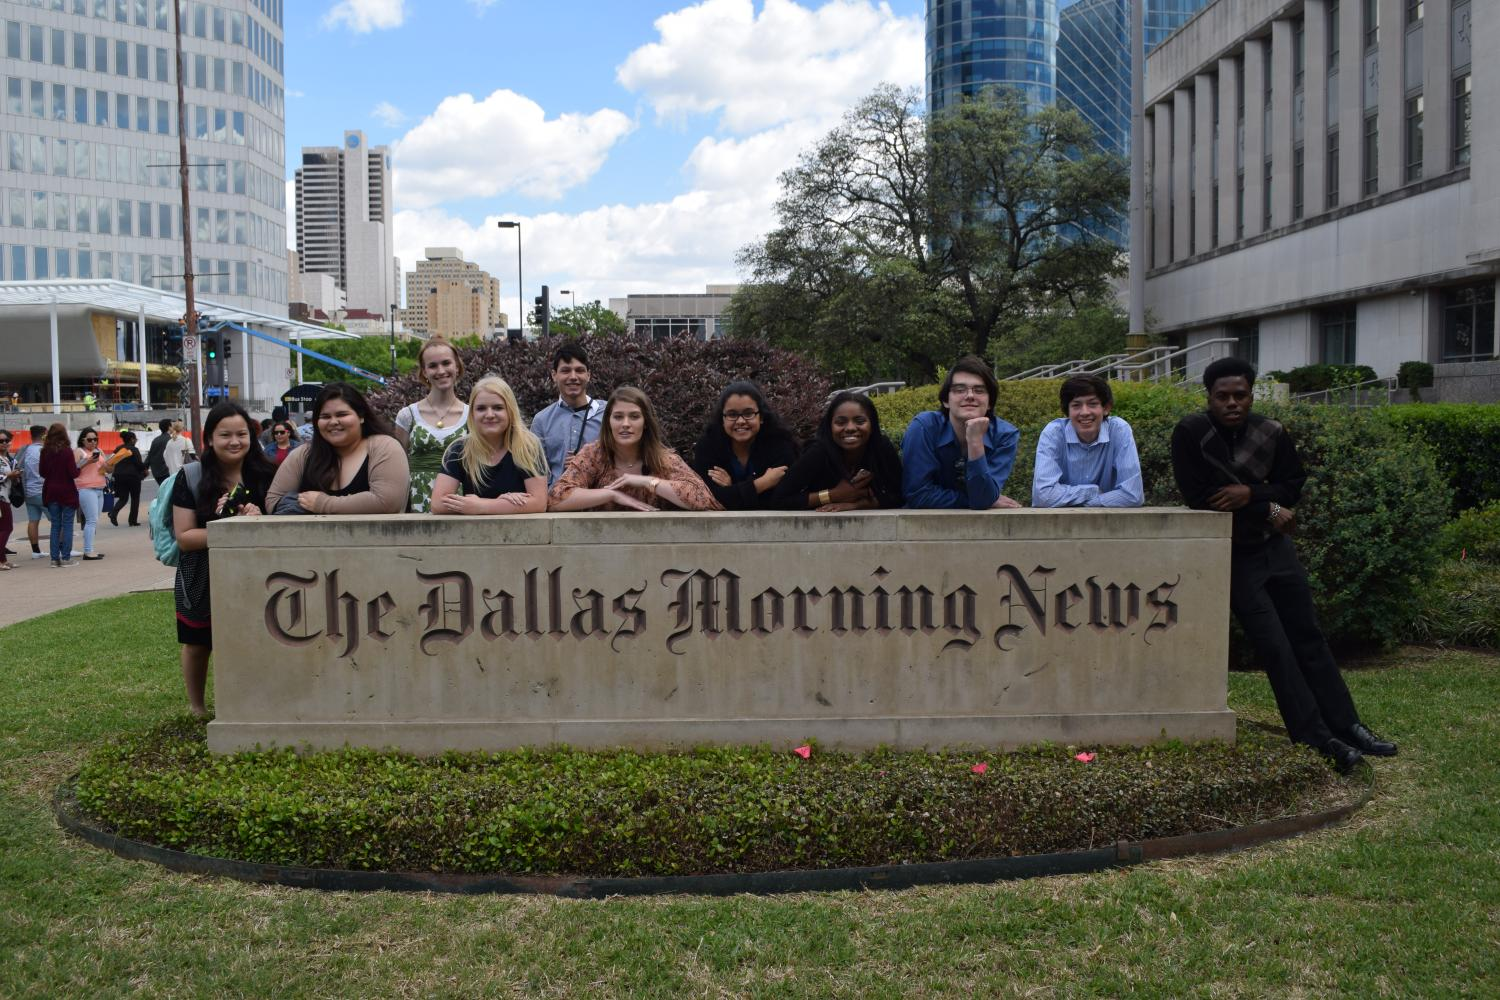 Learning+with+the+pros+%5C%5C+The+newspaper+staff+visited+Dallas+Morning+News+for+their+annual+journalism+day.+Students+attended+workshops+on+design%2C+writing%2C+photography%2C+etc.